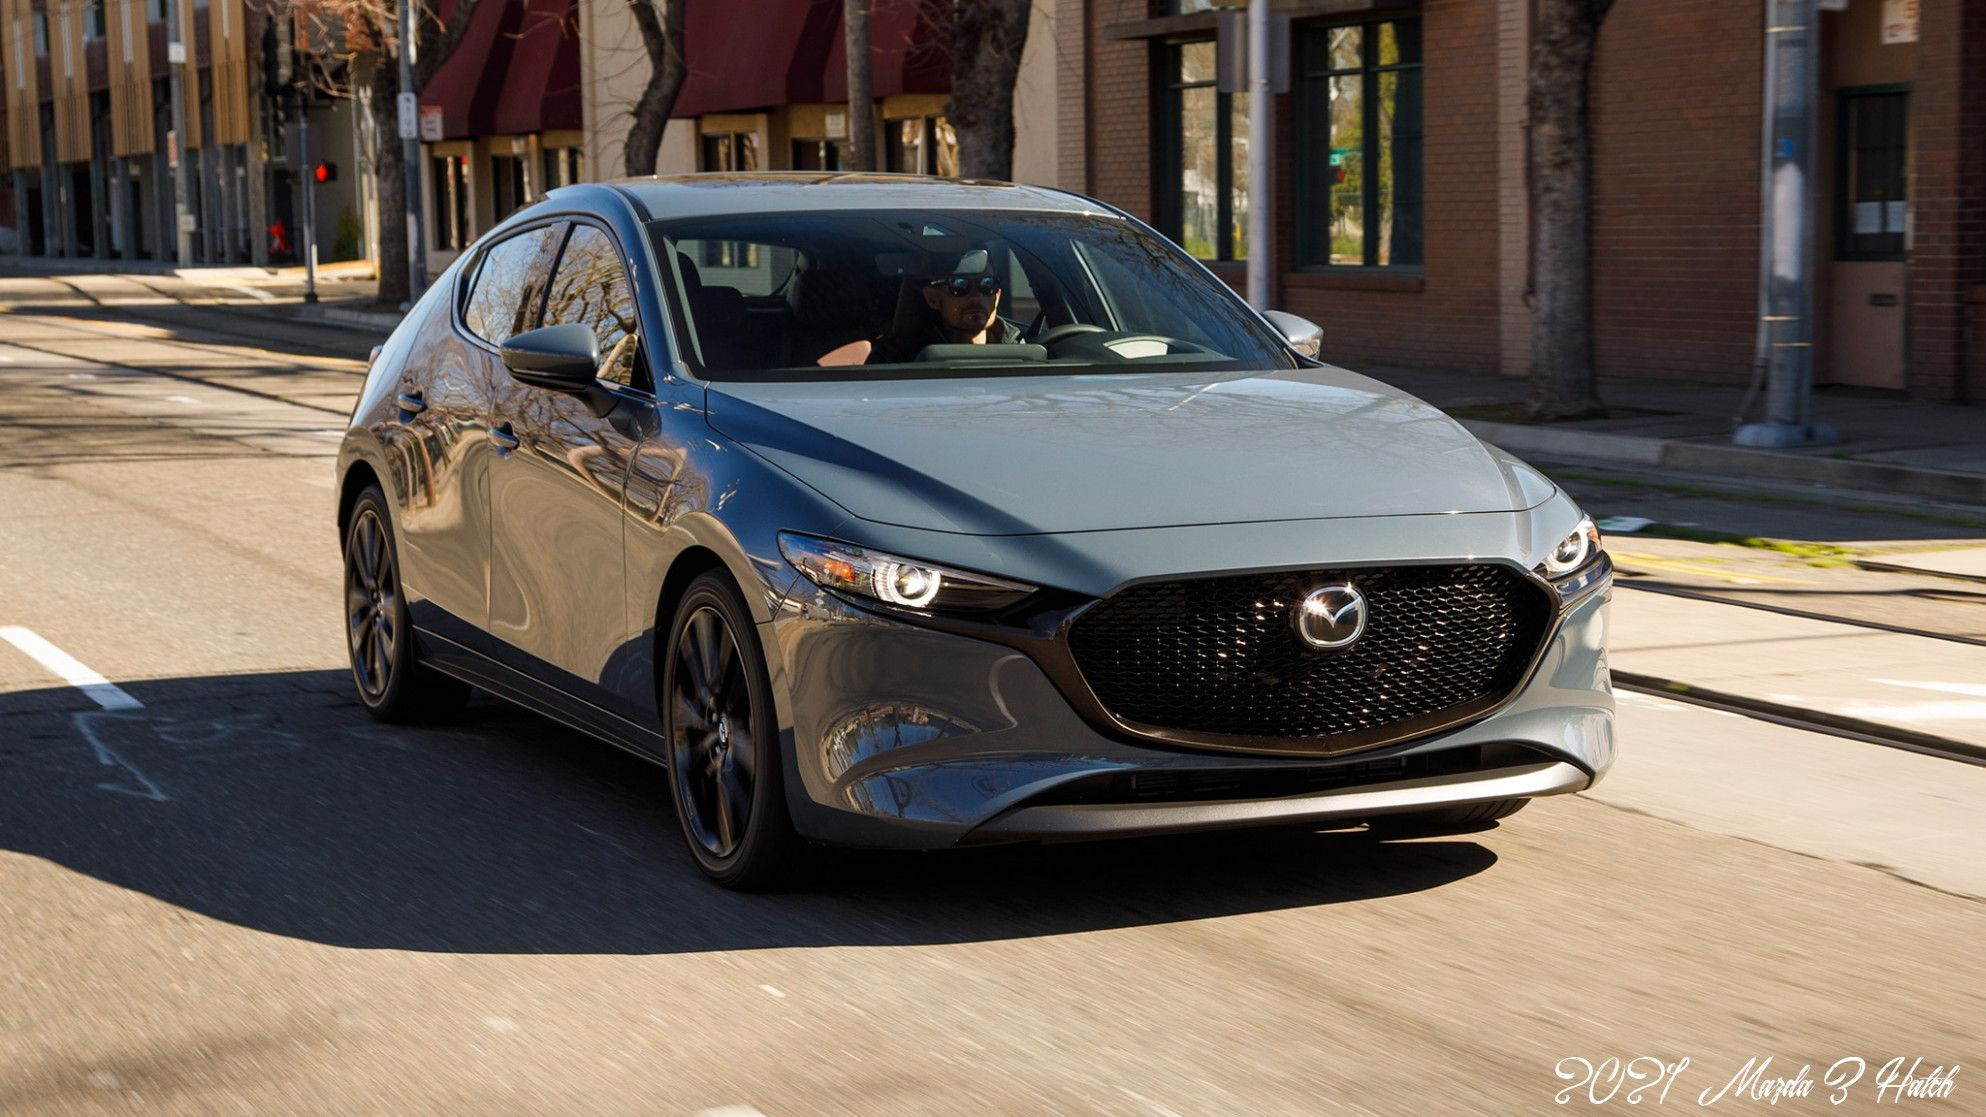 2021 mazda 3 hatch price and review in 2020  turbo